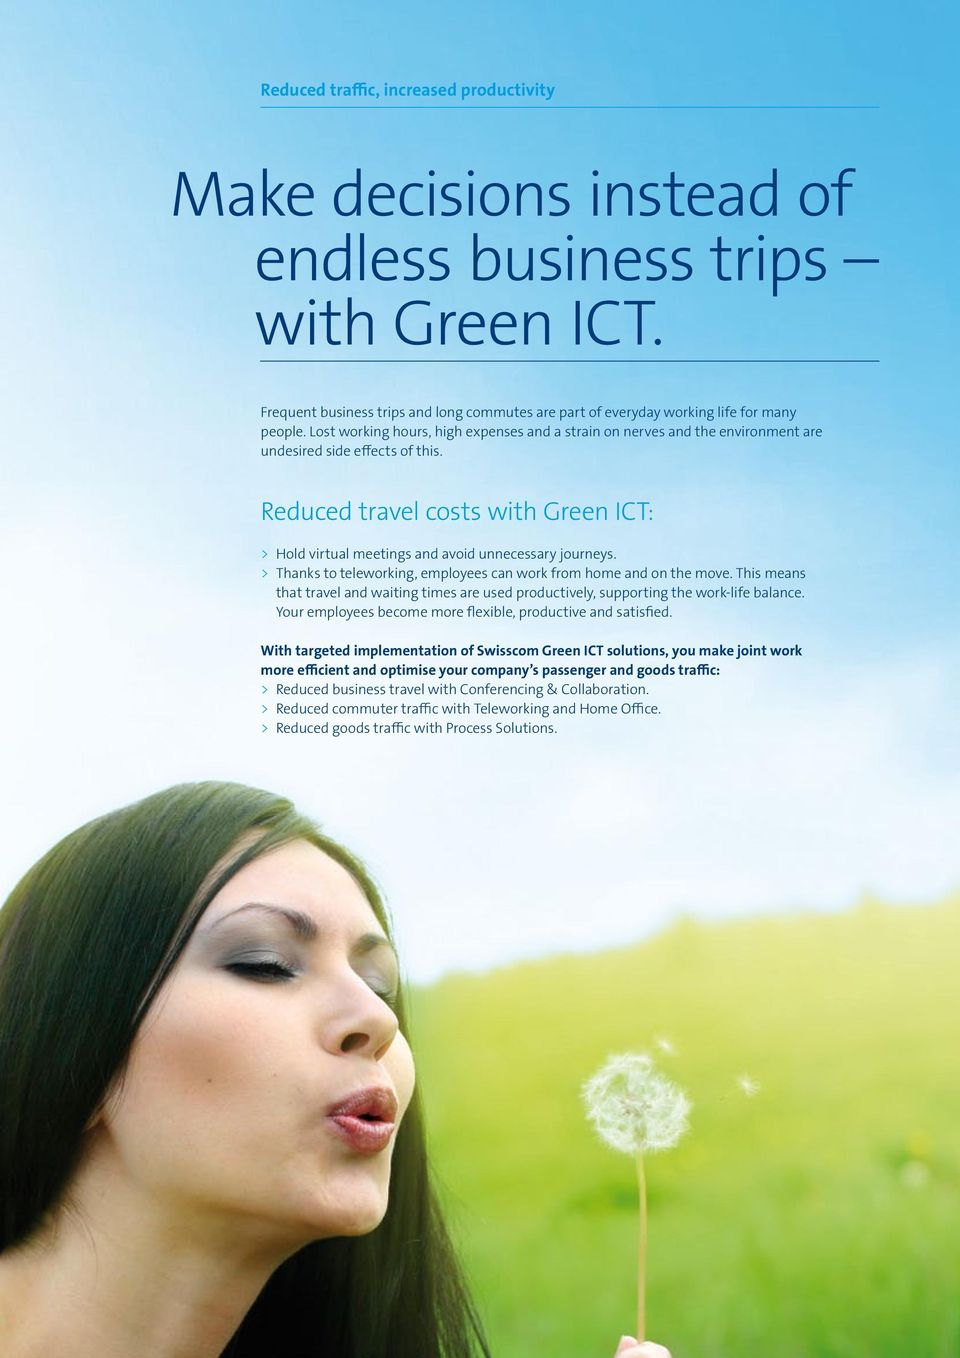 Reduced travel costs with Green ICT: > Hold virtual meetings and avoid unnecessary journeys. > Thanks to teleworking, employees can work from home and on the move.